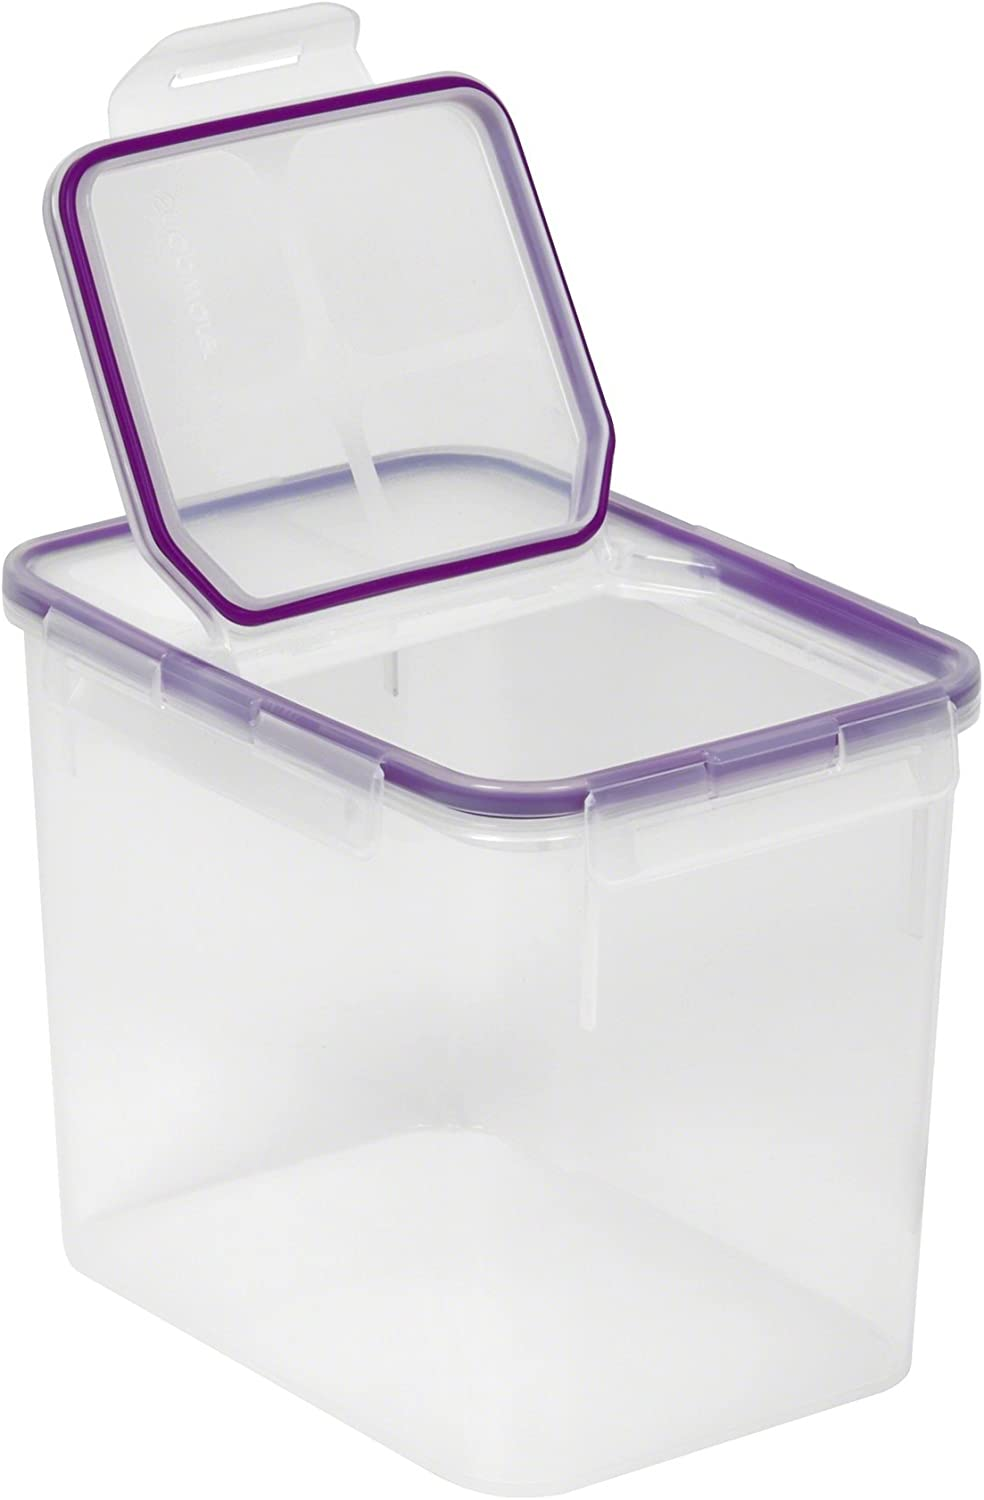 Snapware 17-Cup Airtight Flip Storage Container, Plastic